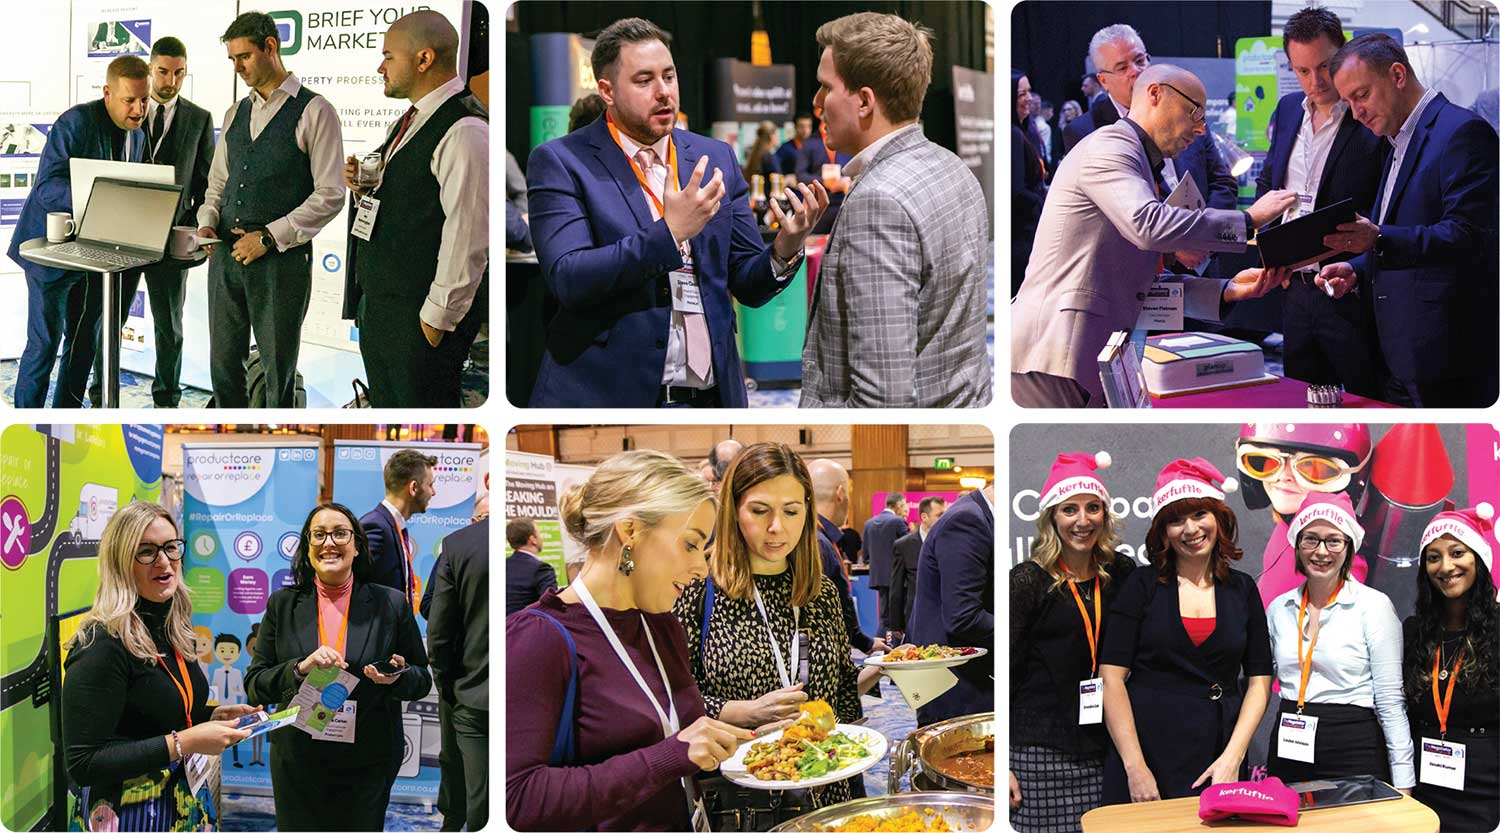 The Negotiator Conference for Estate Agents Letting Agents Exhibitors image